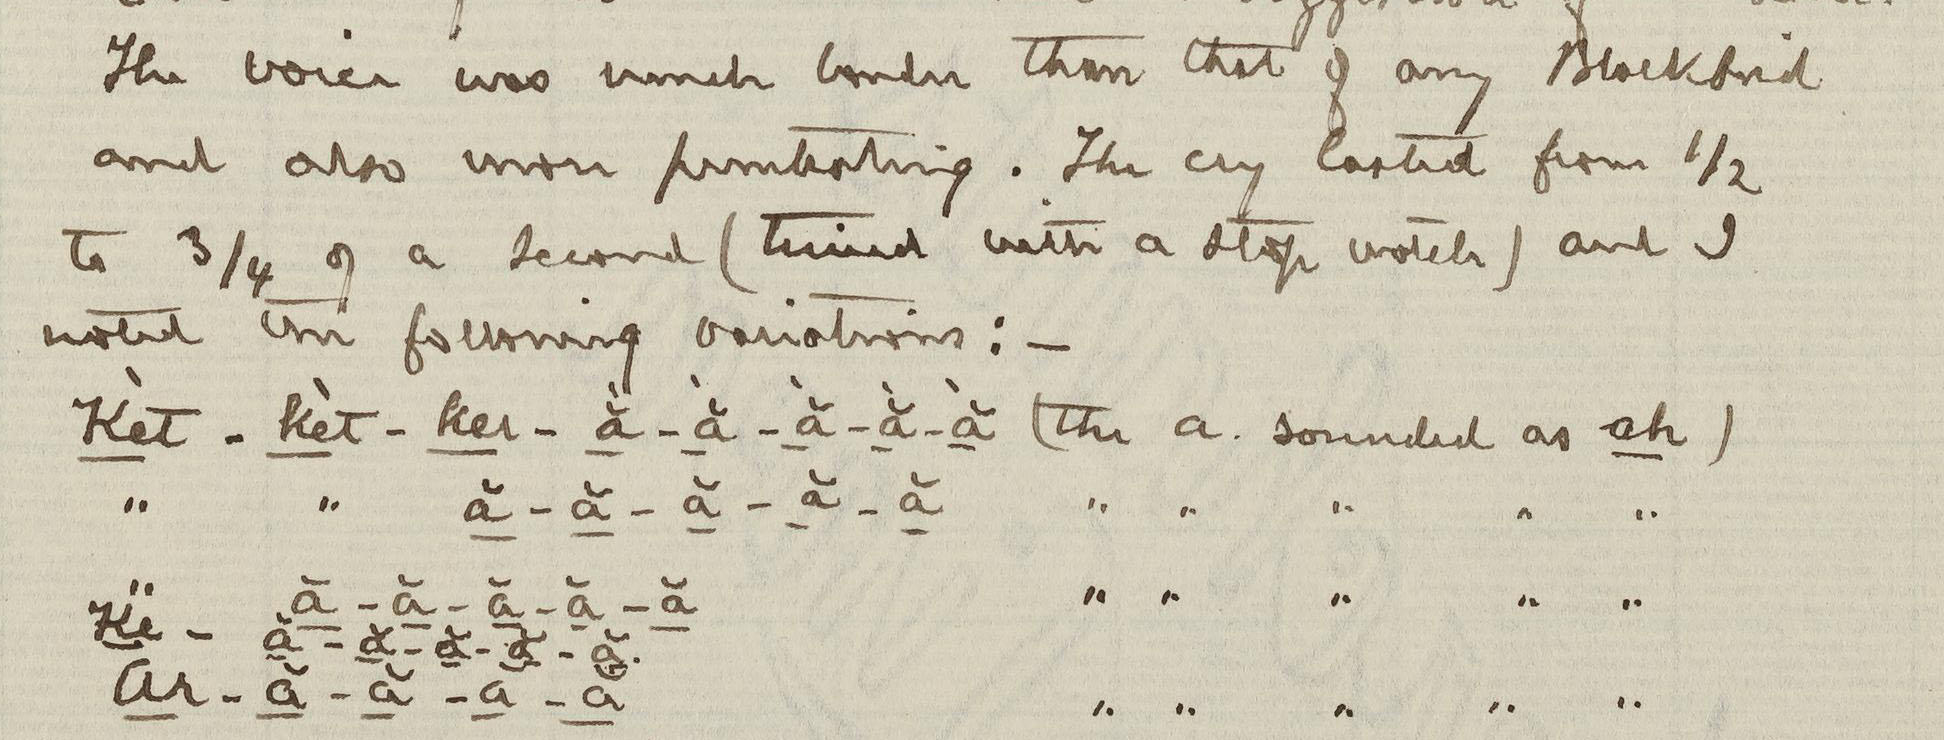 Part of a page from Brewster's journal that shows a written rendition of bird sounds.